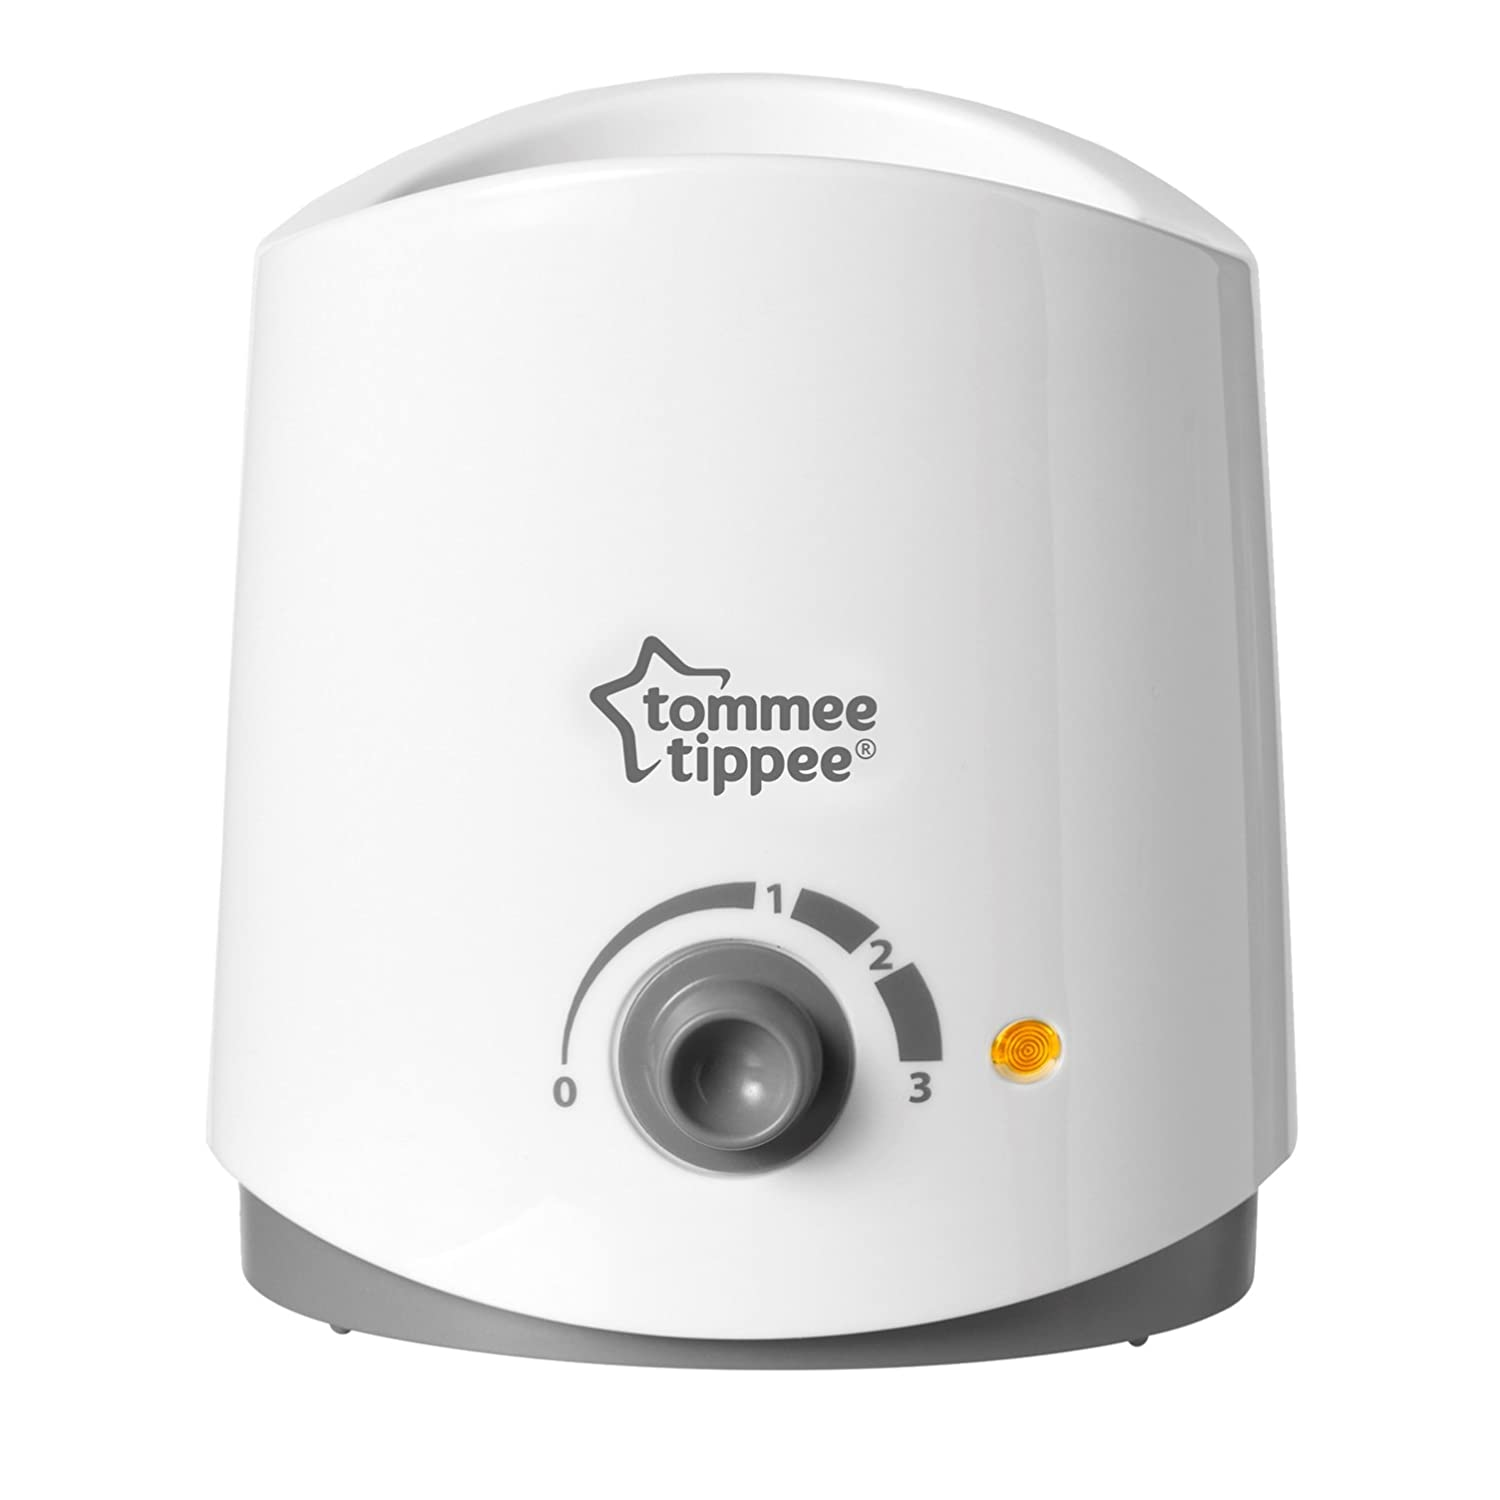 Tommee Tippee Closer to Nature Electric Bottle and Food Warmer, White 522146